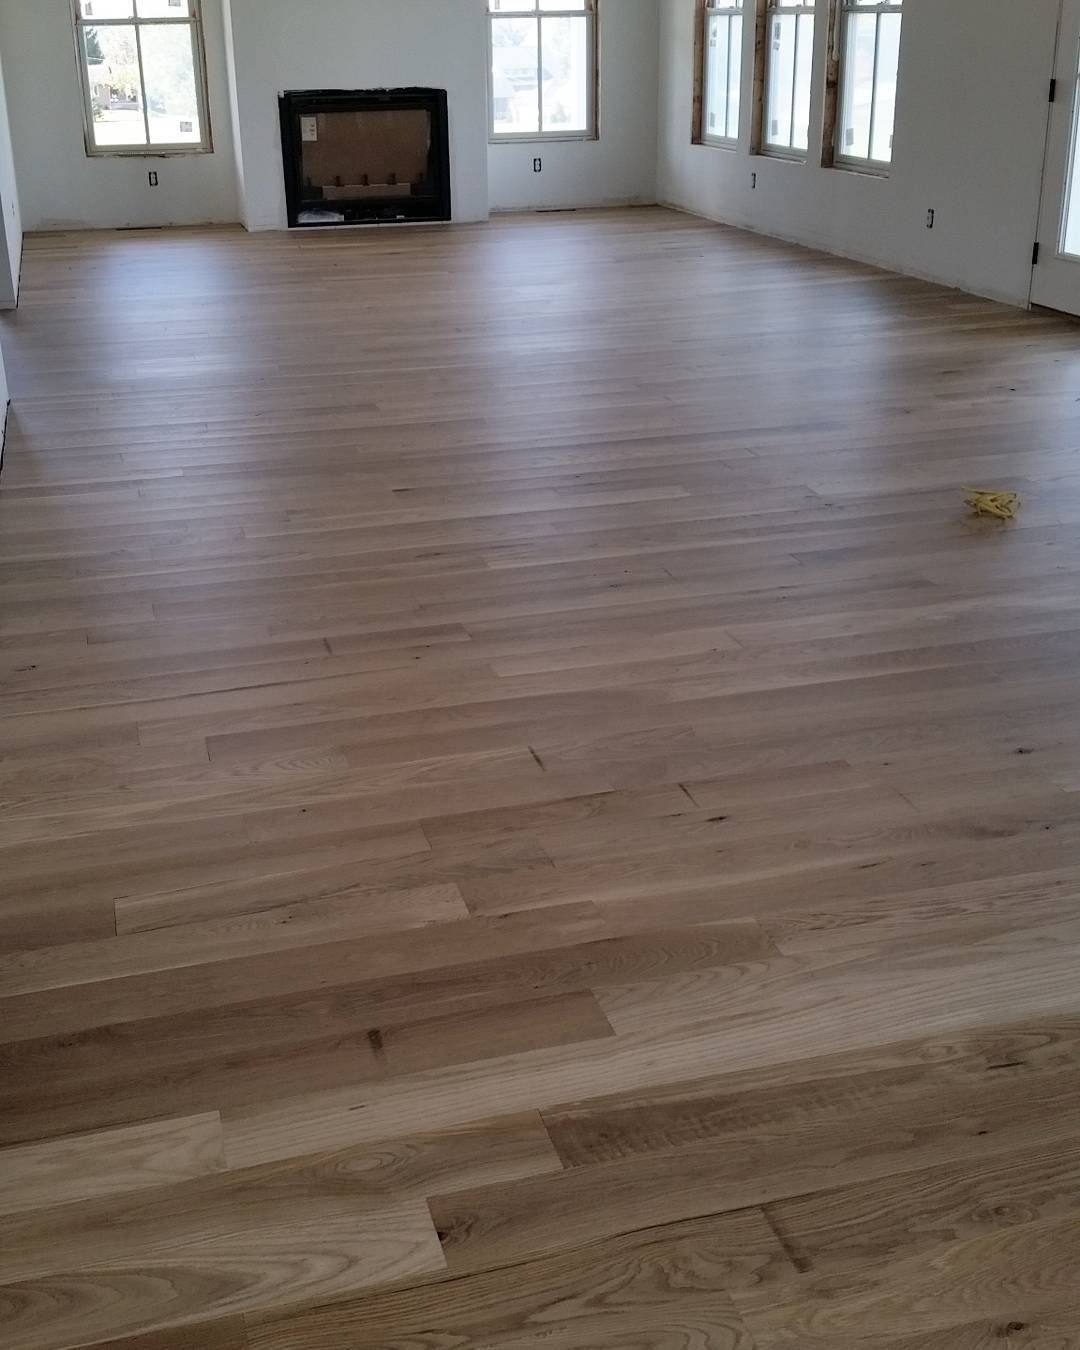 White oak floors sanded sealed sanded 3x matte top coat bona finish